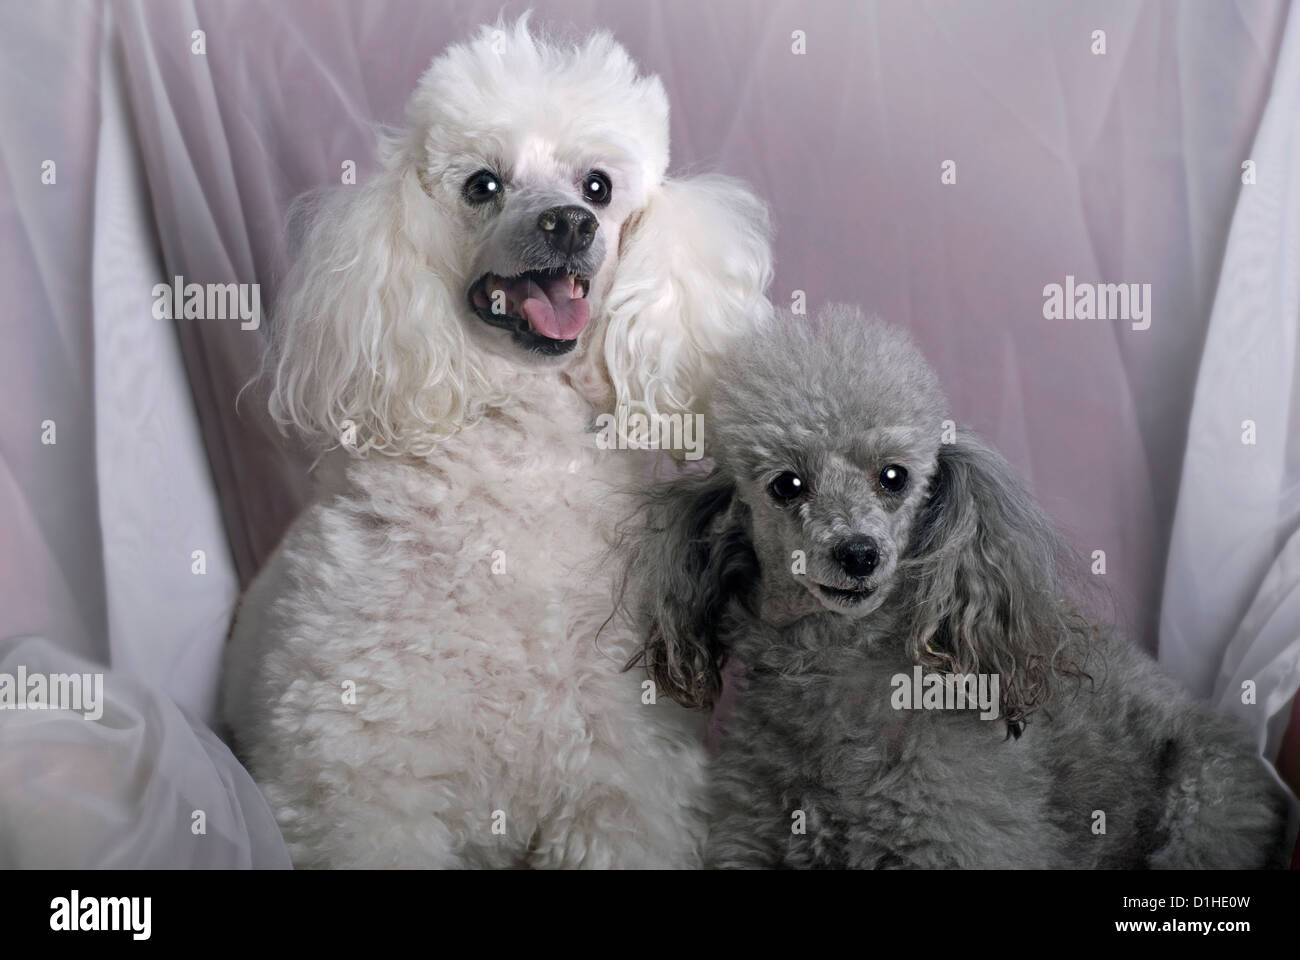 A horizontal close up portrait of a white miniature poodle and a gray toy poodle against a soft, white drape. - Stock Image